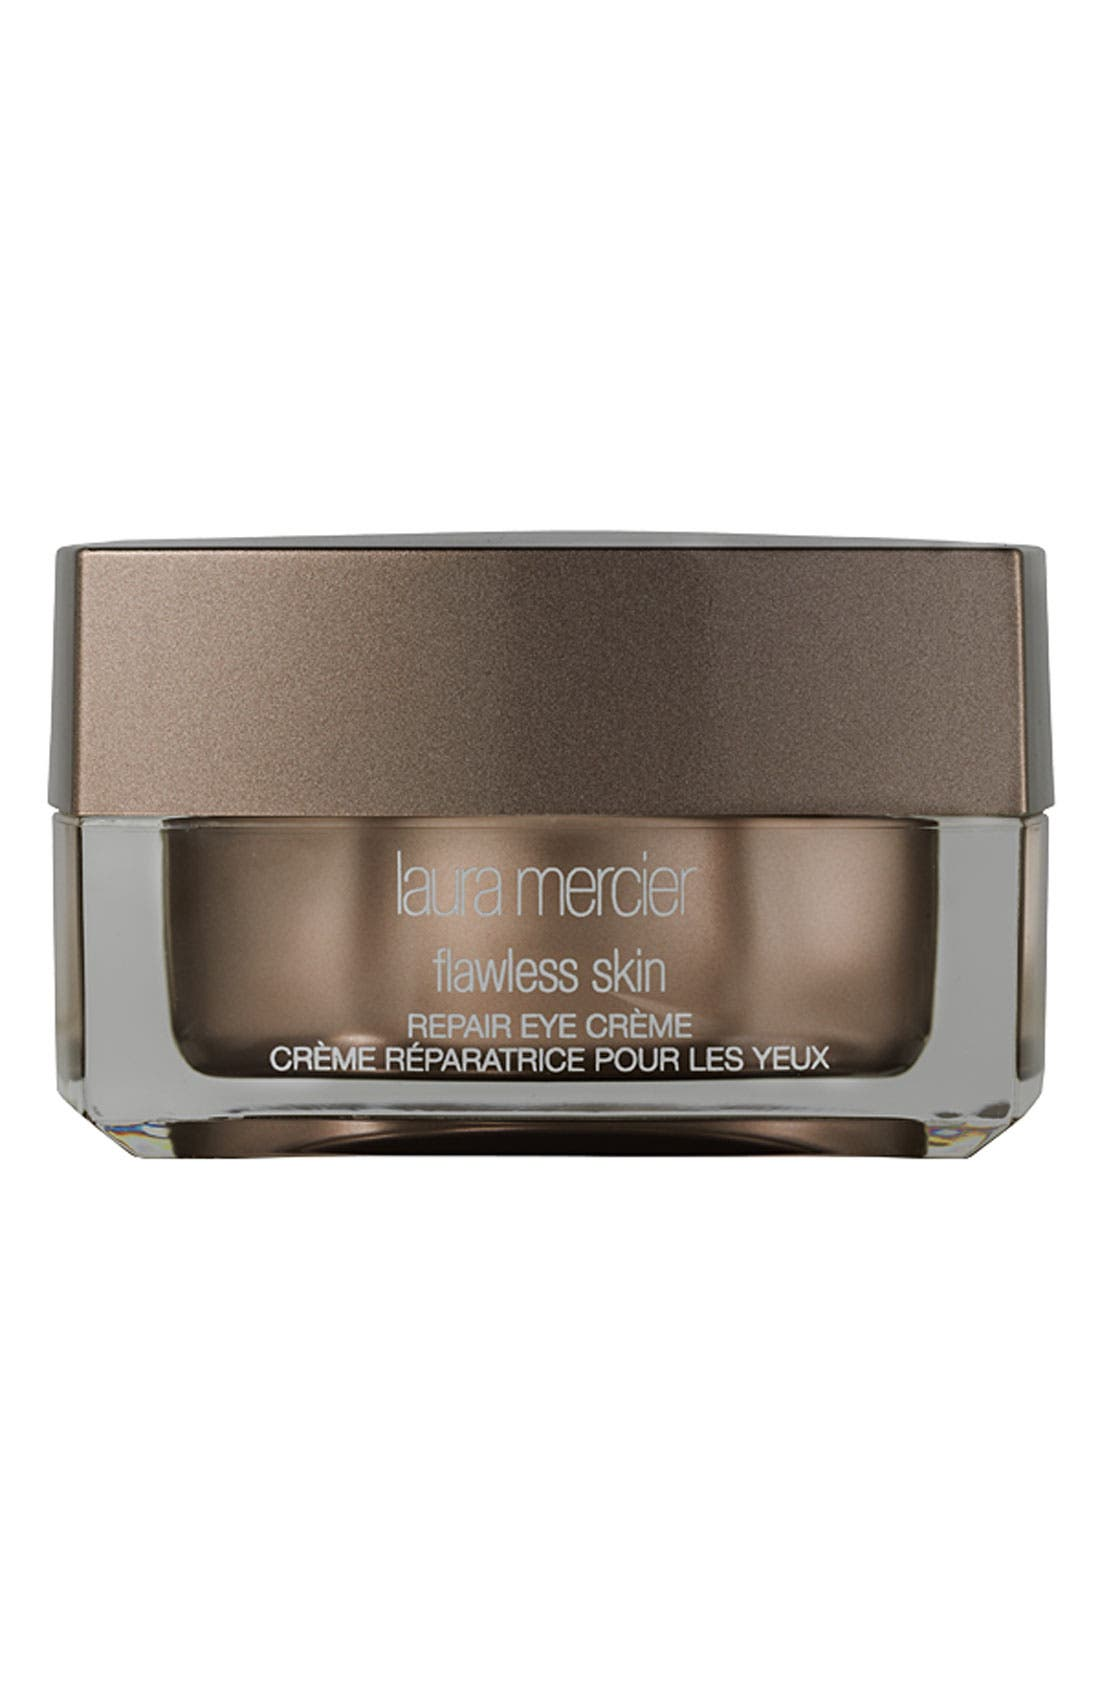 Laura Mercier 'Flawless Skin Repair' Eye Crème